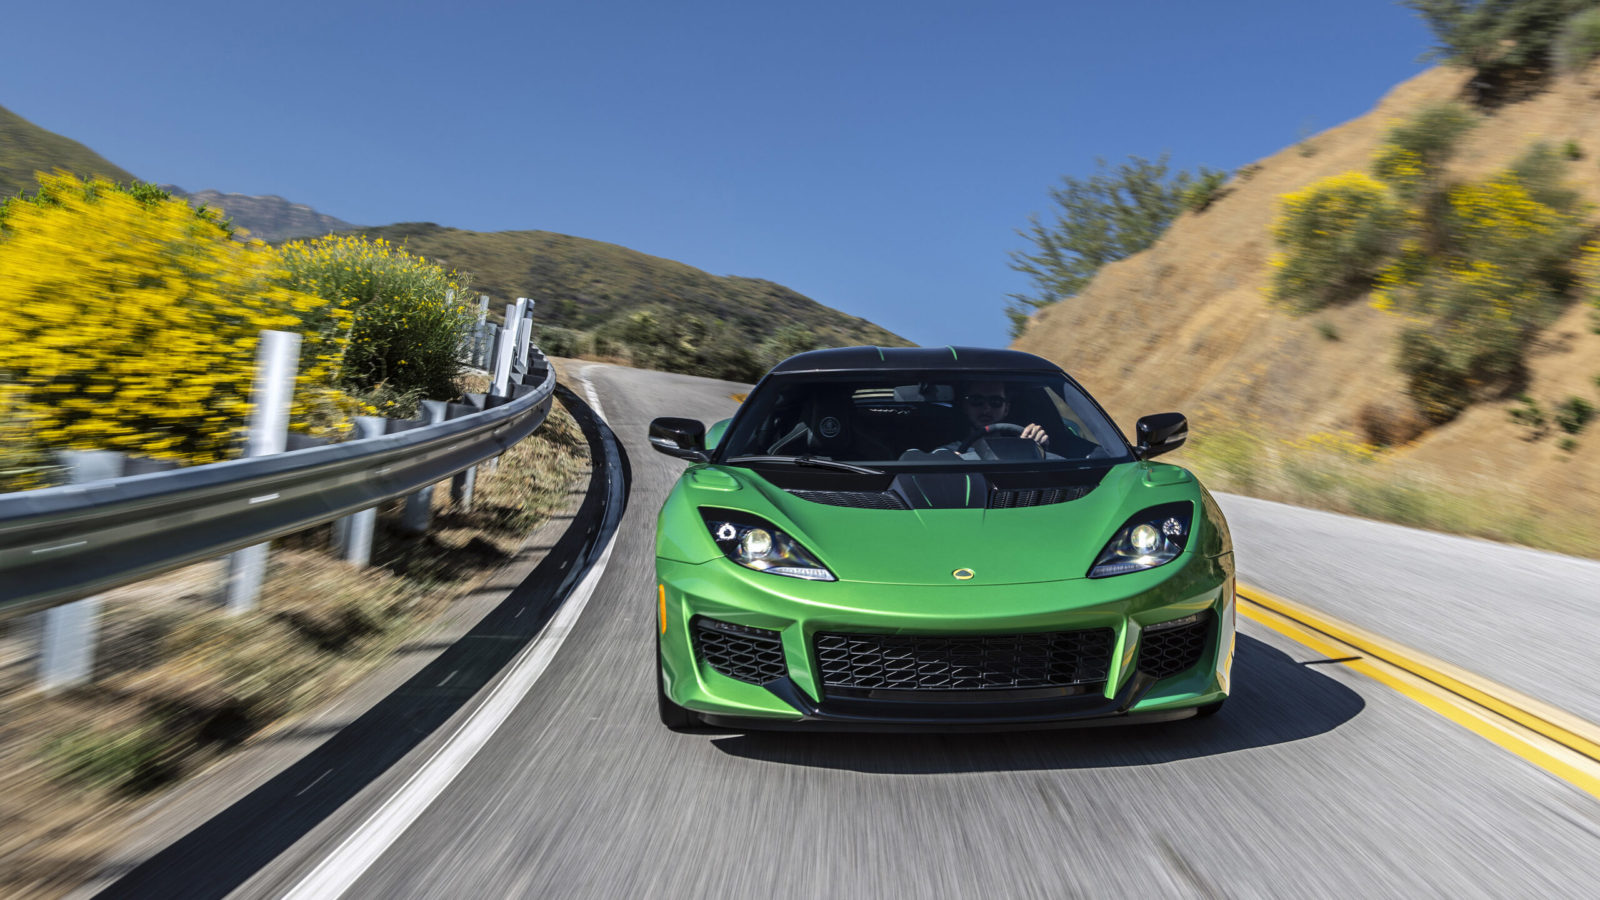 2020-lotus-evora-gt-wallpapers